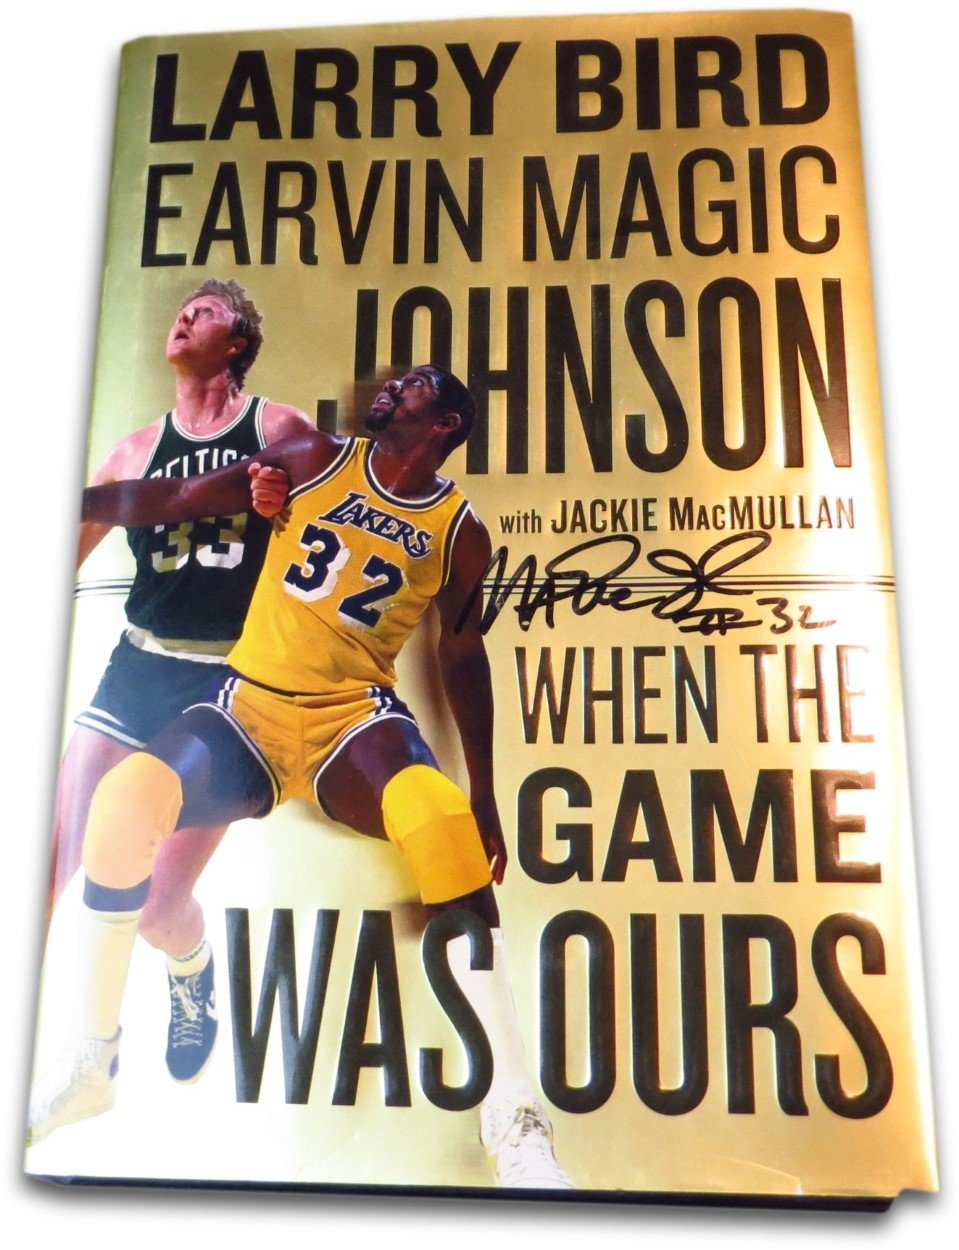 """Magic Johnson Signed Autographed Book """"When the Game Was Ours"""" Lakers Bird w/COA"""